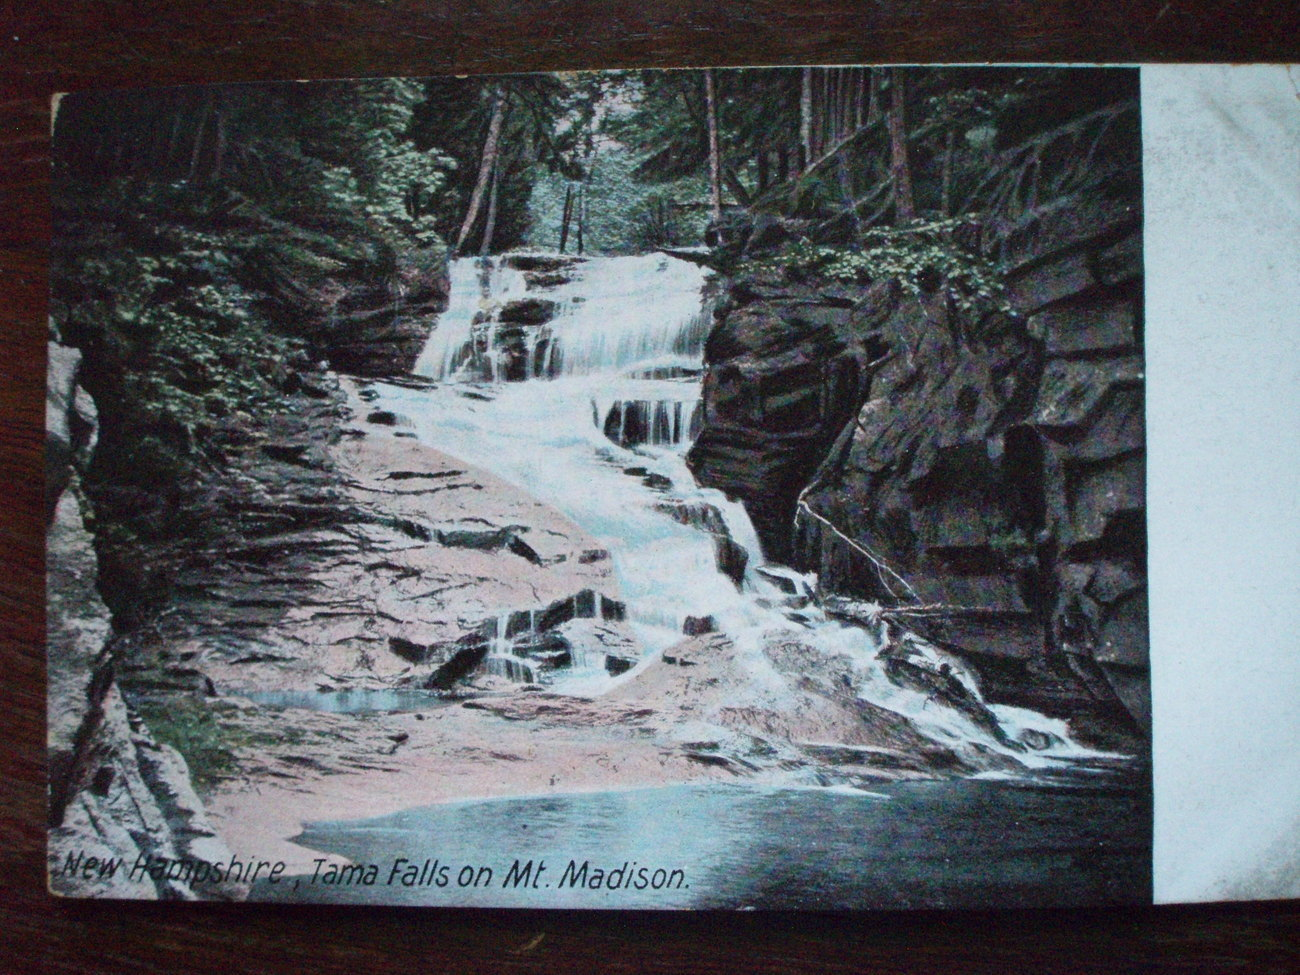 Thumbnail of Antique Postcard Tama Falls Mt. Madison NH 1900